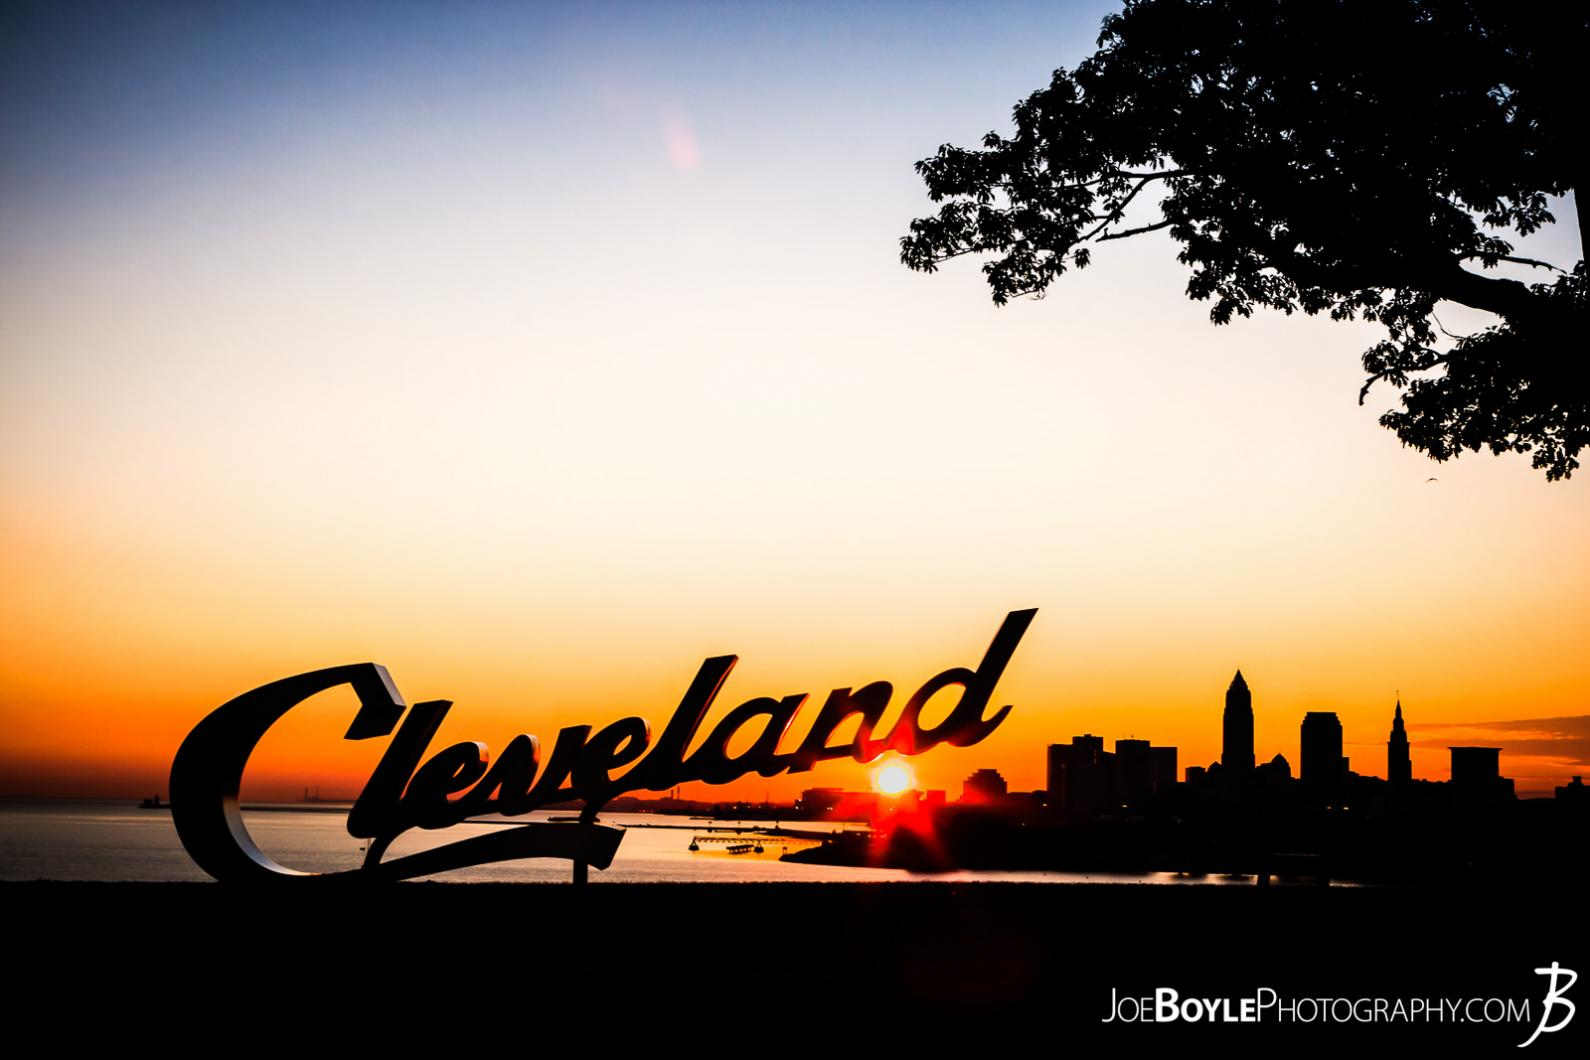 cleveland-sign-during-sunrise-at-edgewater-park-city-beneath-the-sign-ii